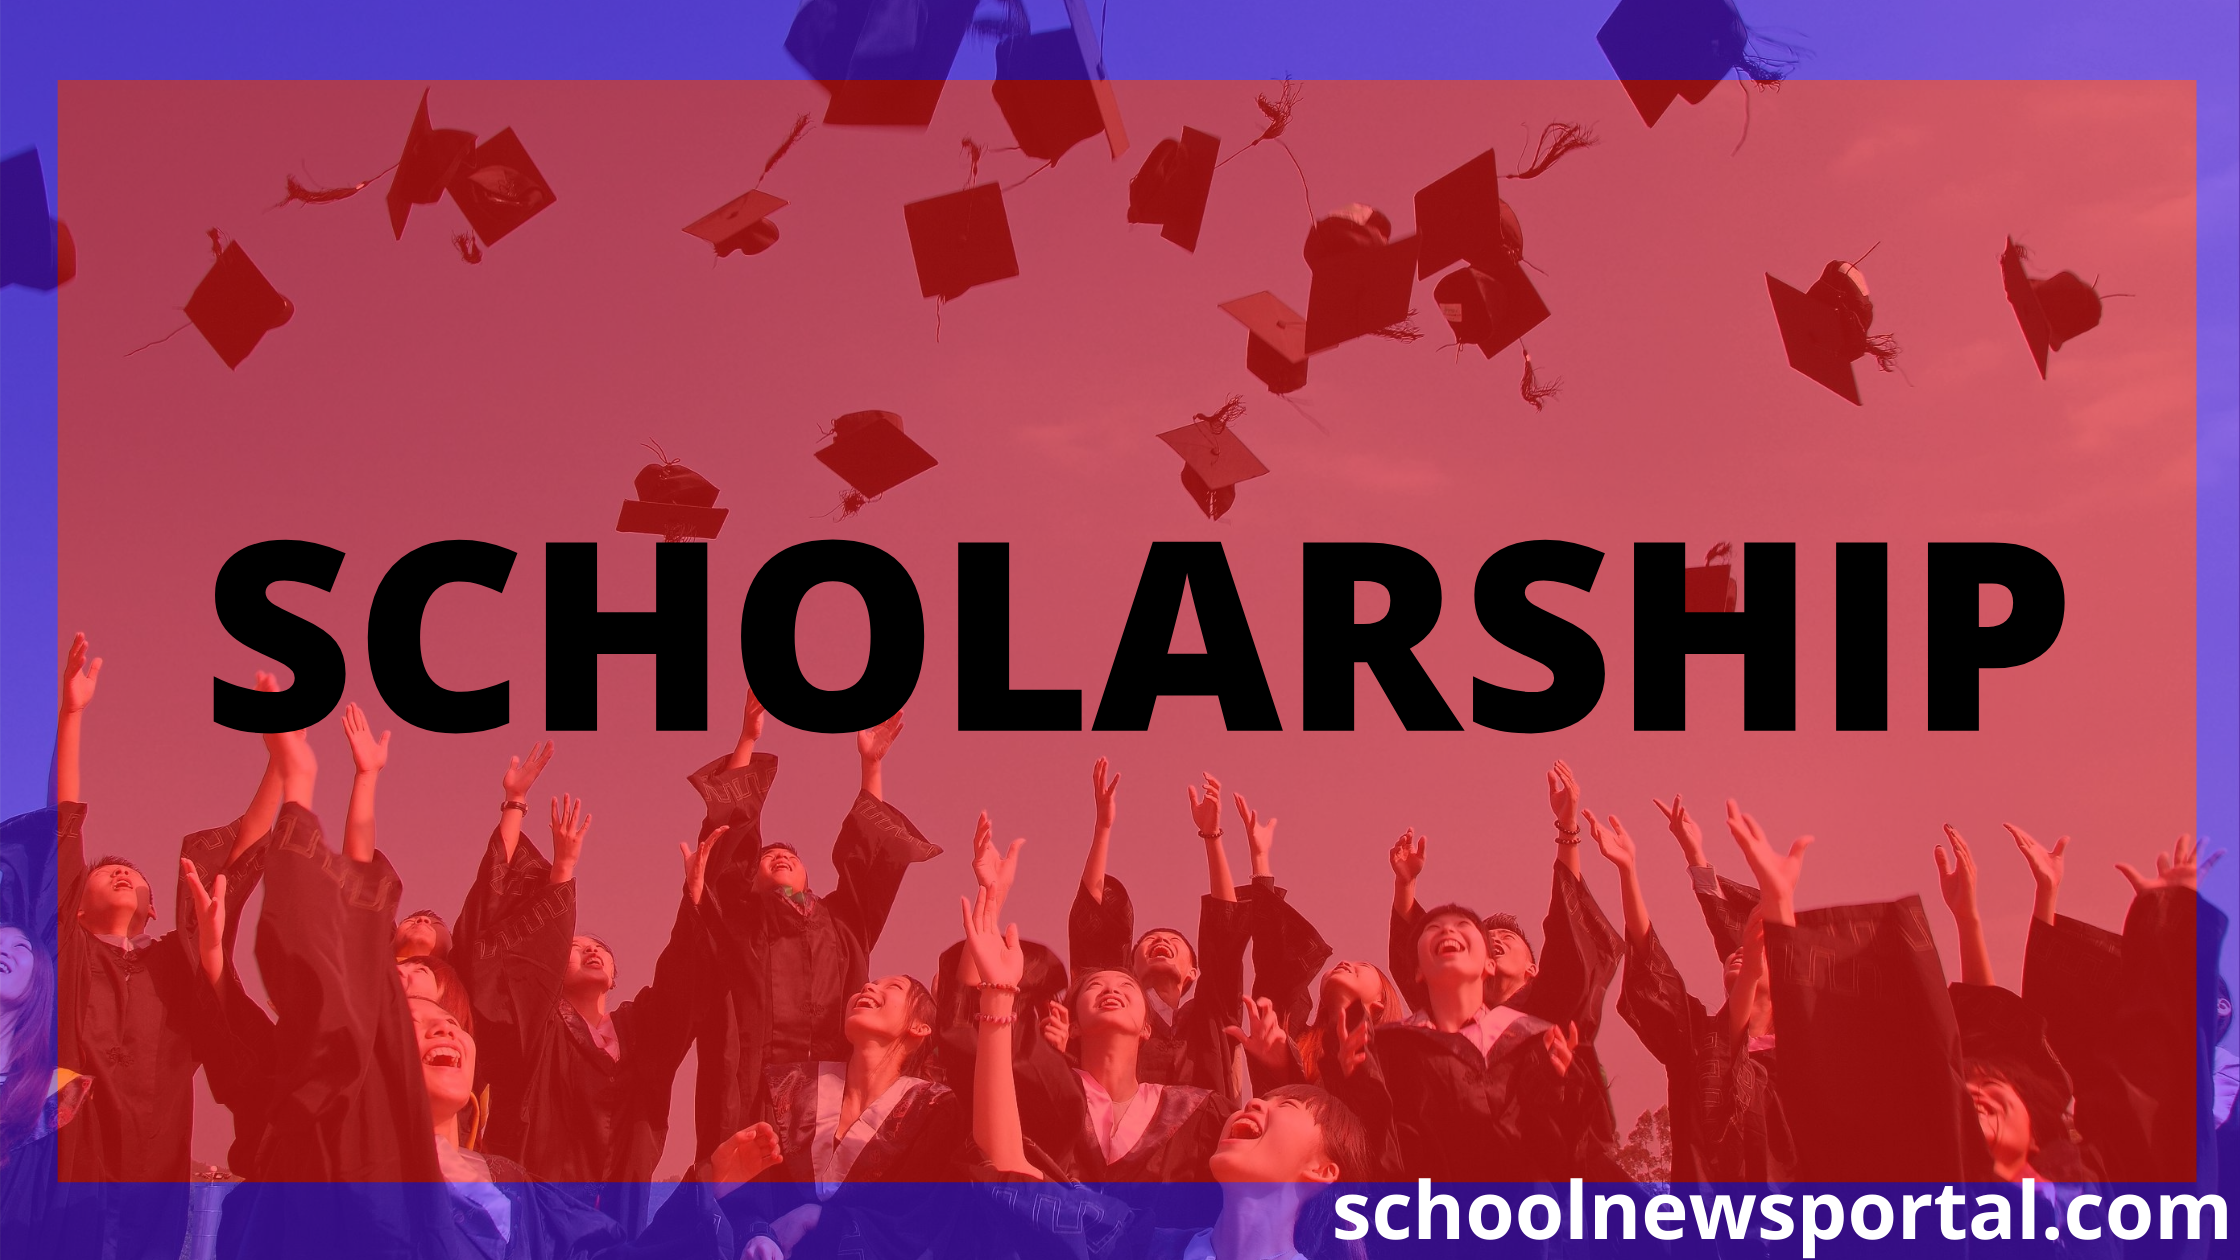 Rhodes Global Scholarships | Application Guidelines to Study in UK